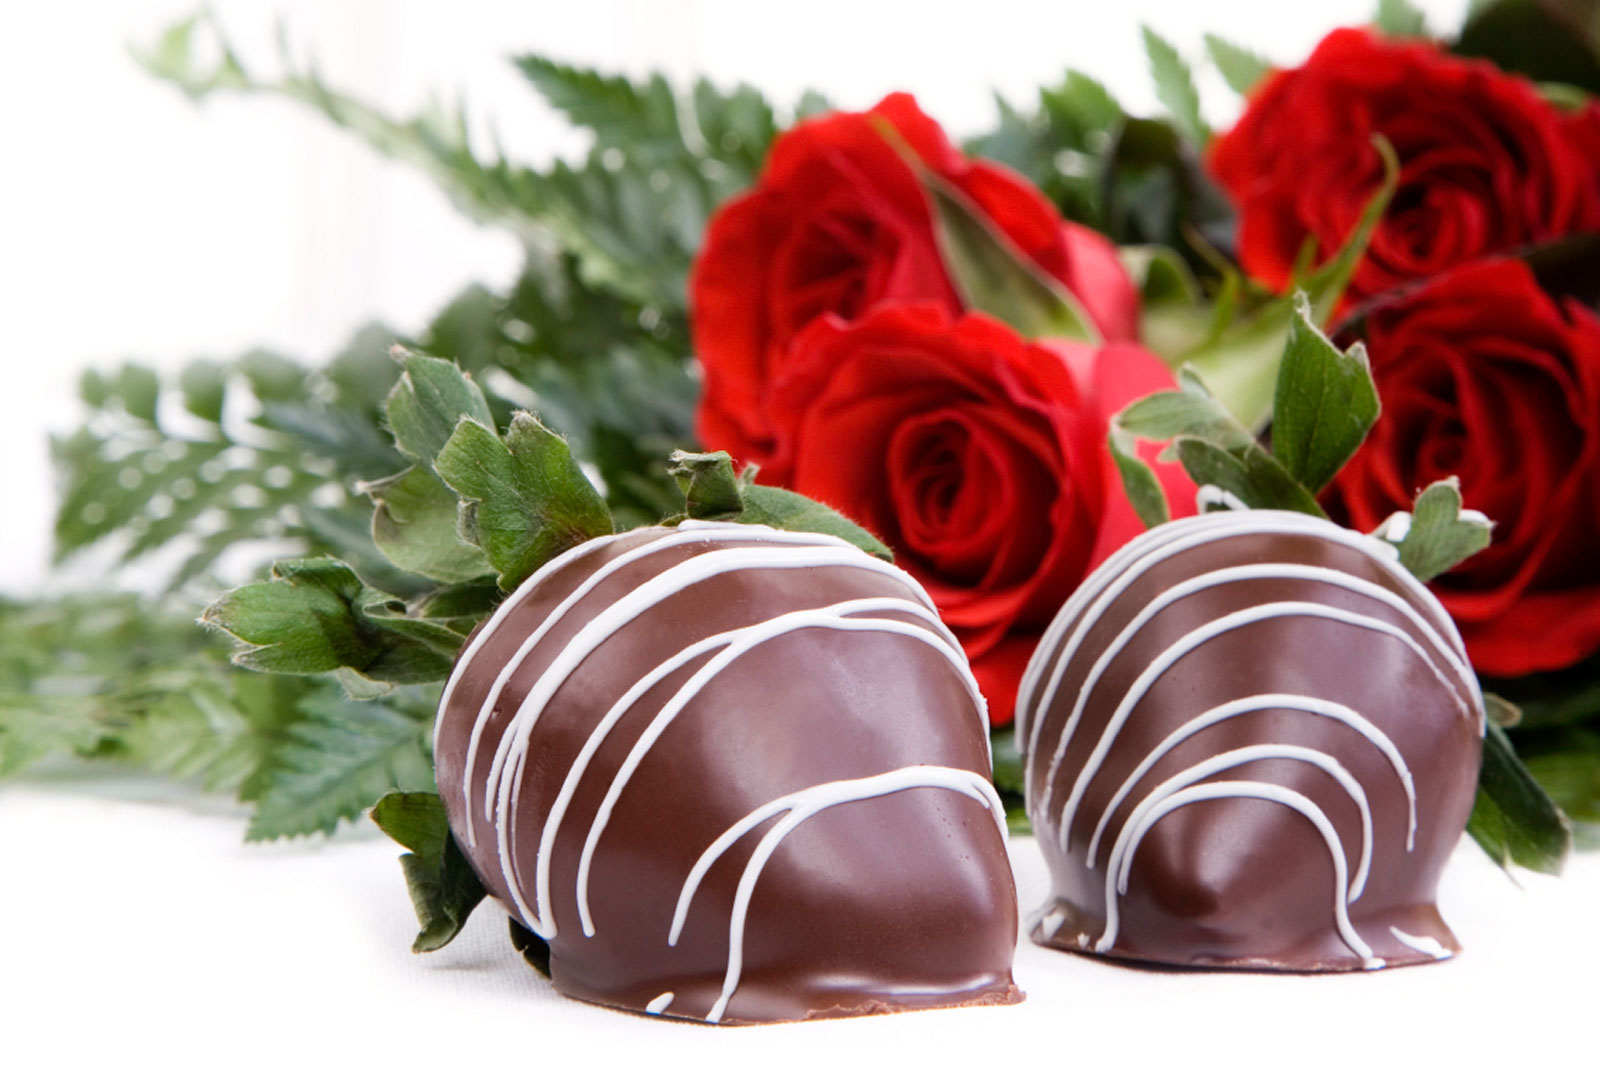 alt='2 Chocolate covered strawberries with red roses laying in the background'